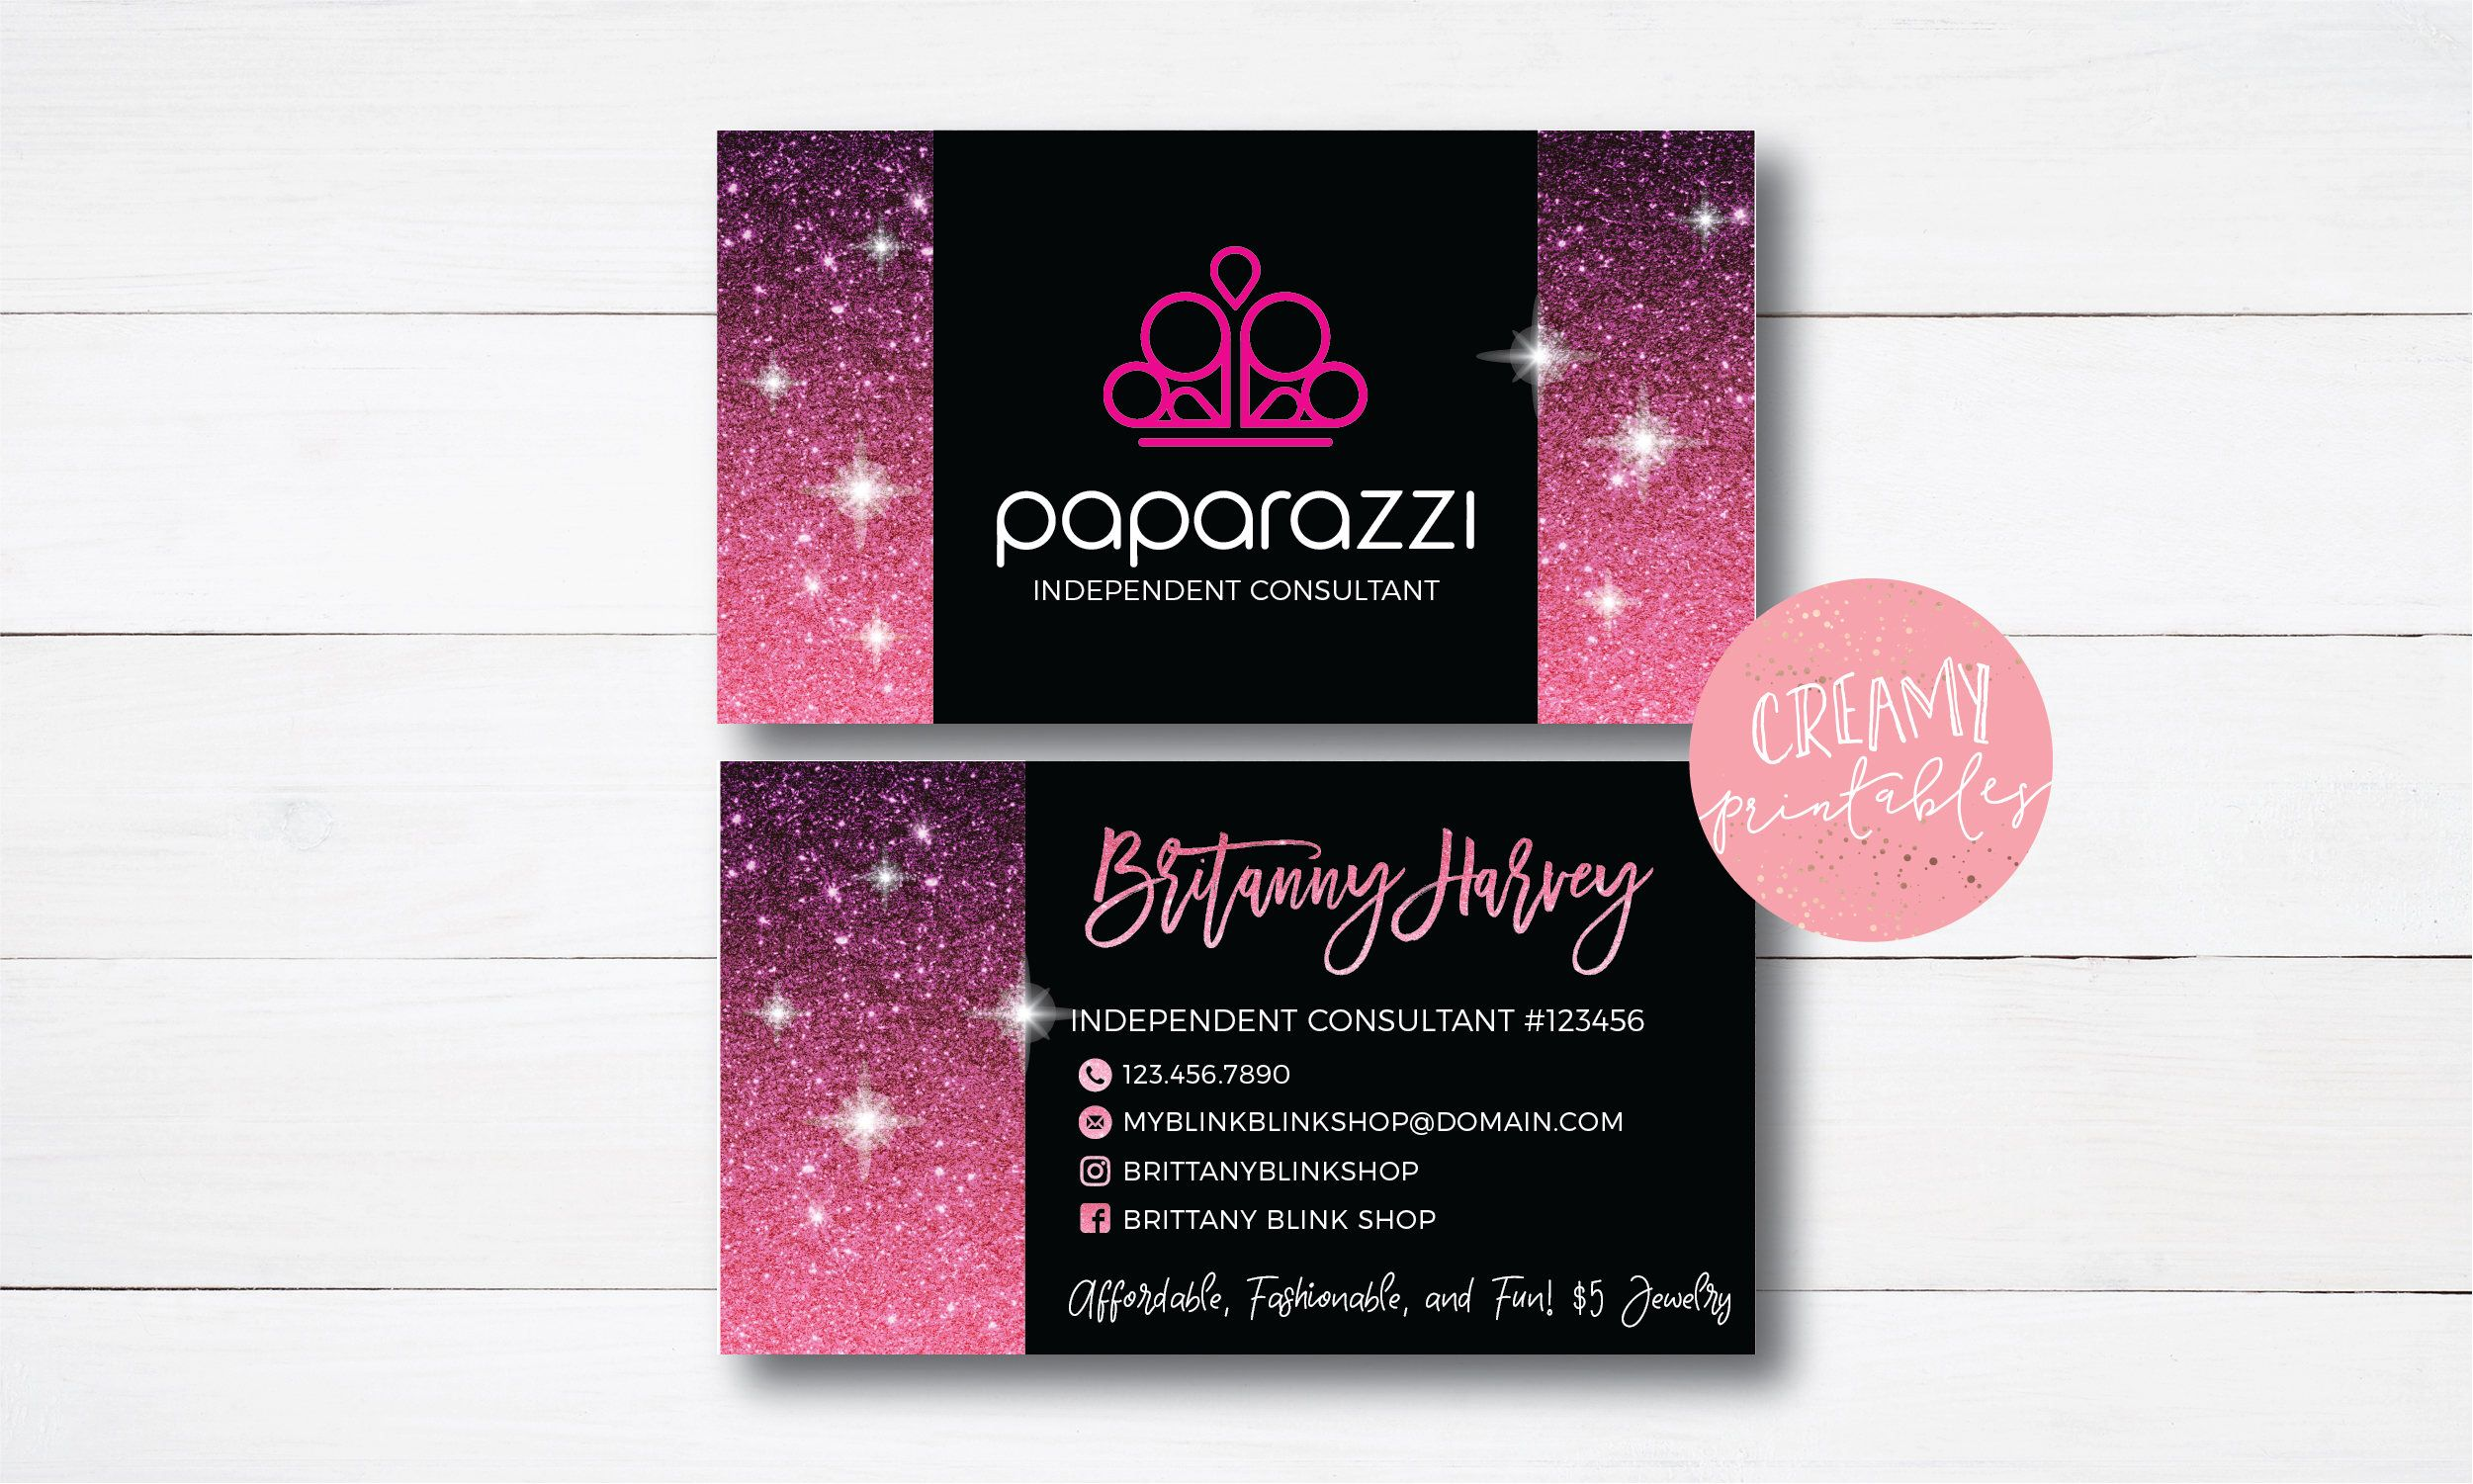 Printable Paparazzi Business Card Paparazzi Jewelry Consultant Card